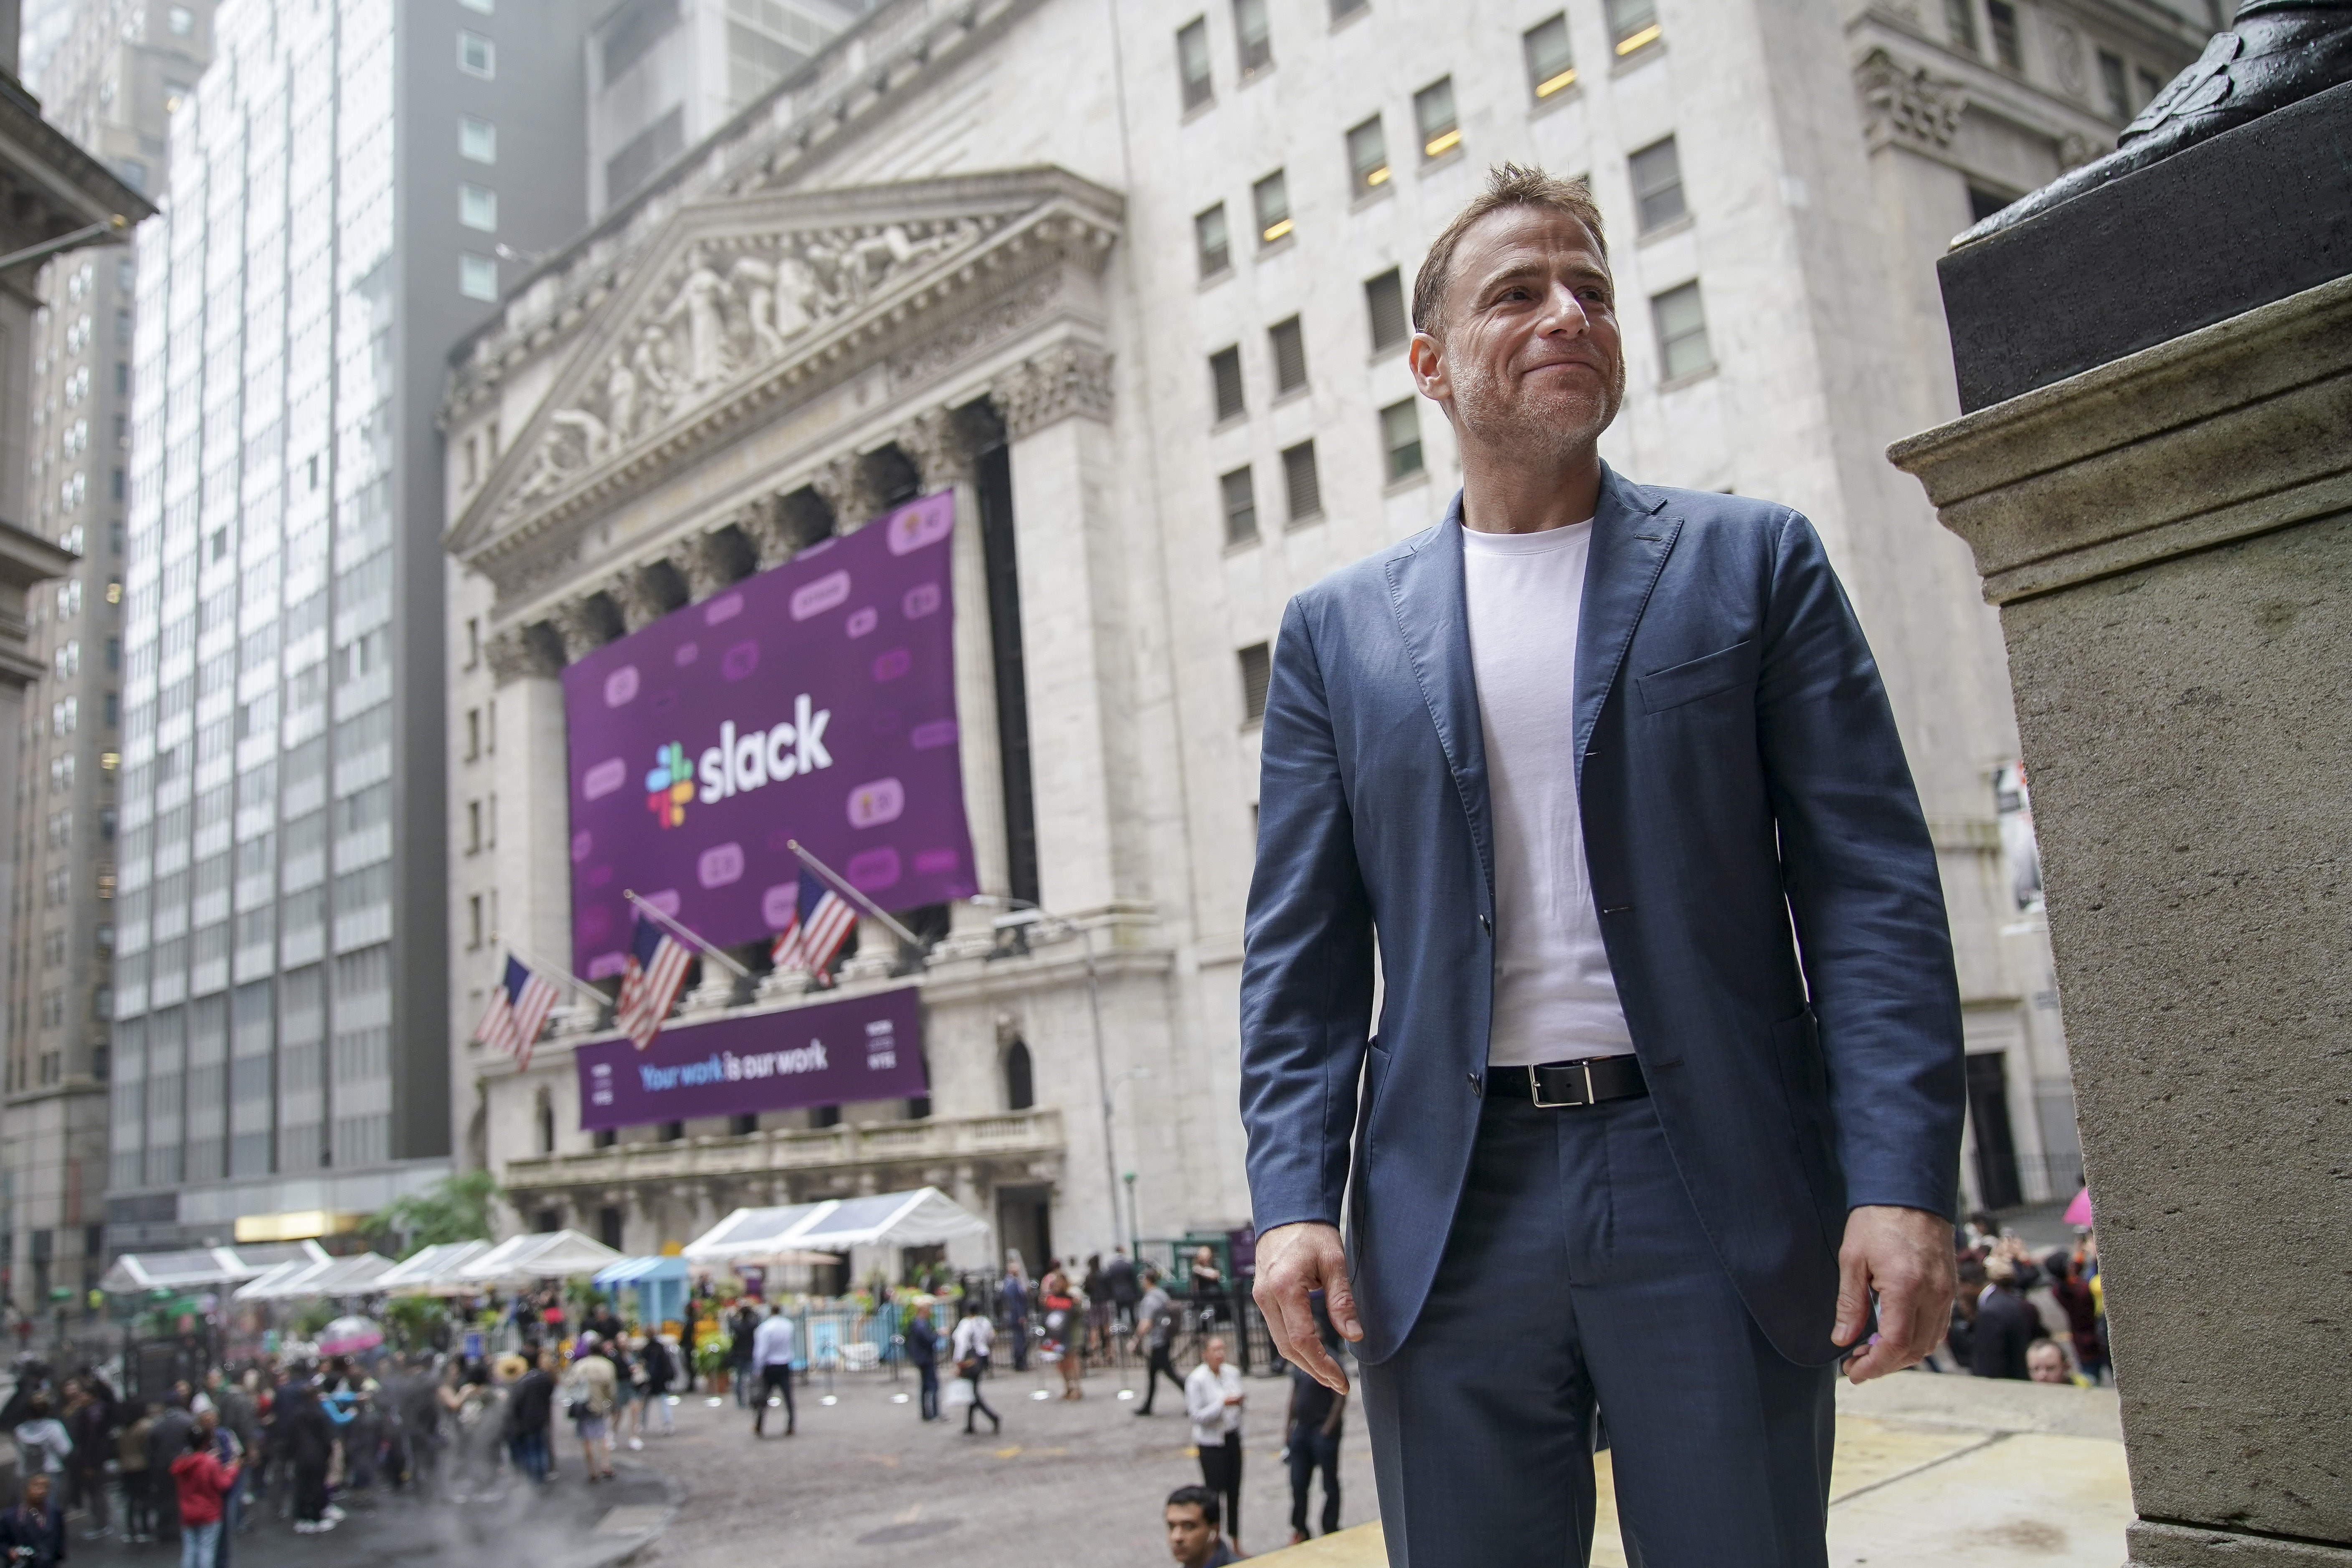 Slack co-founder and CEO Stewart Butterfield standing outside the new York Stock Exchange building.